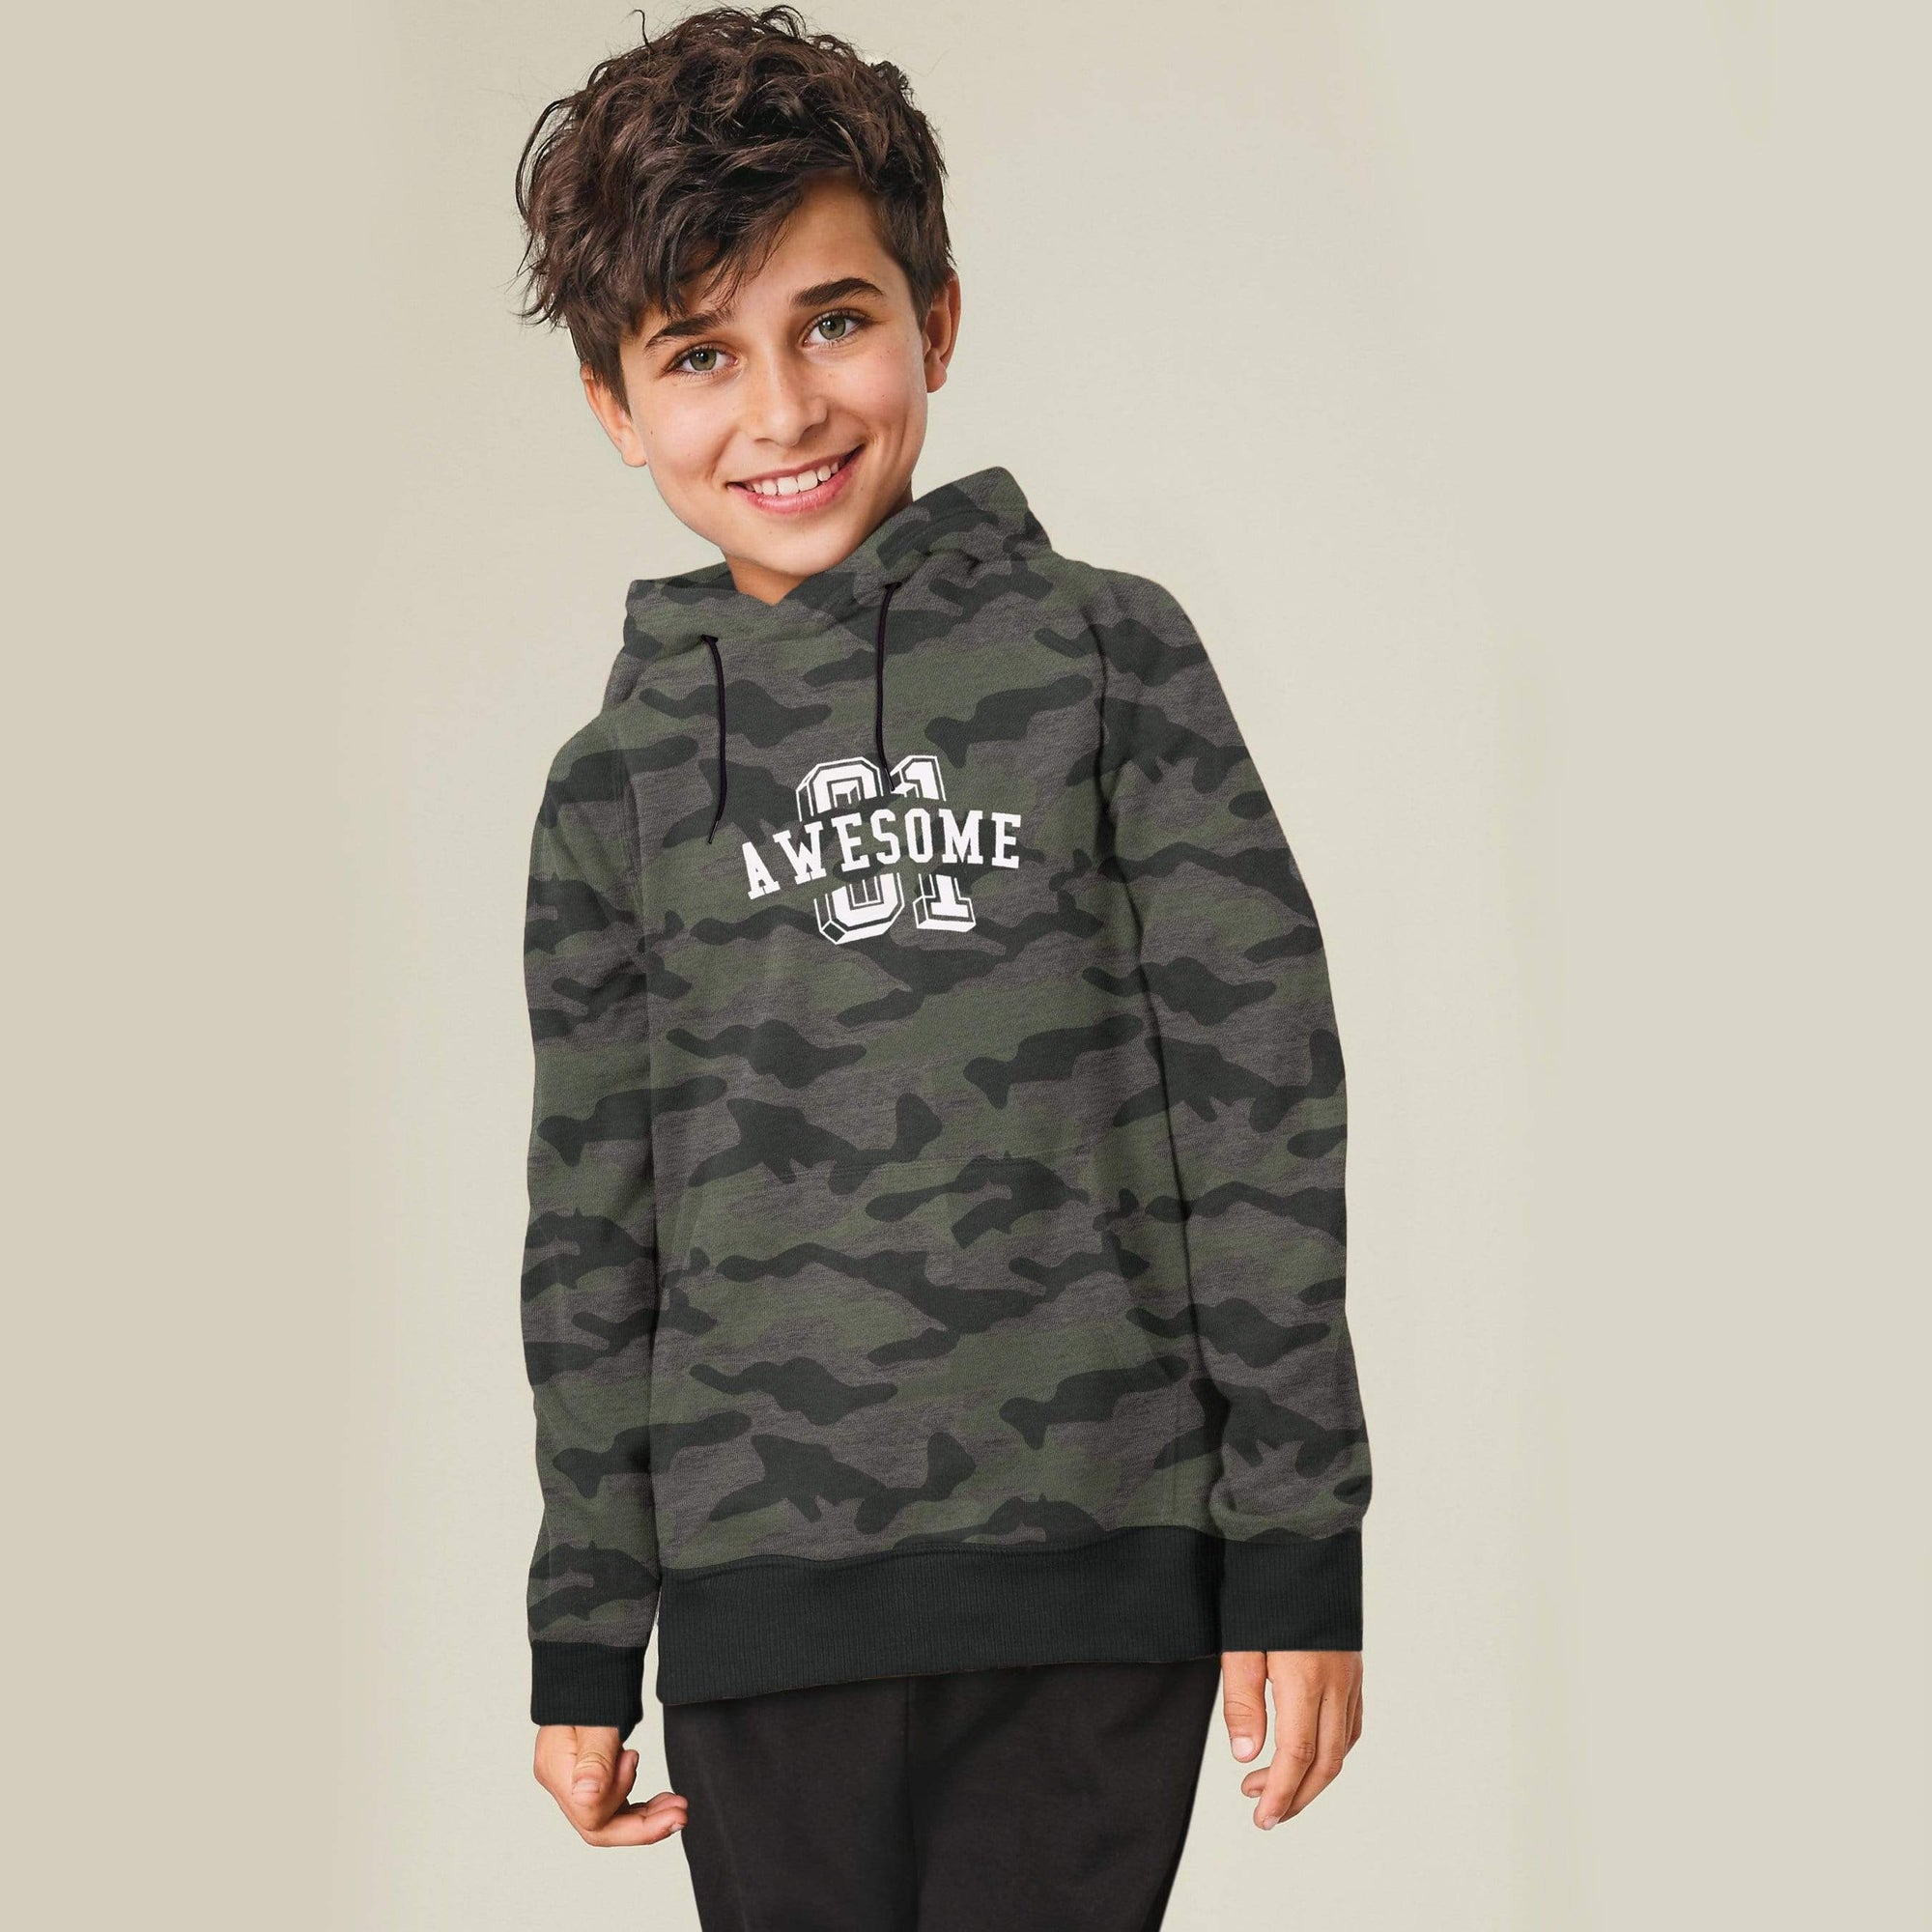 Stone Harbor Kid's Sweatshirt Charcoal / 2-3 Years Boy's Stone Harbor Awesome 01 Pullover Hoodie